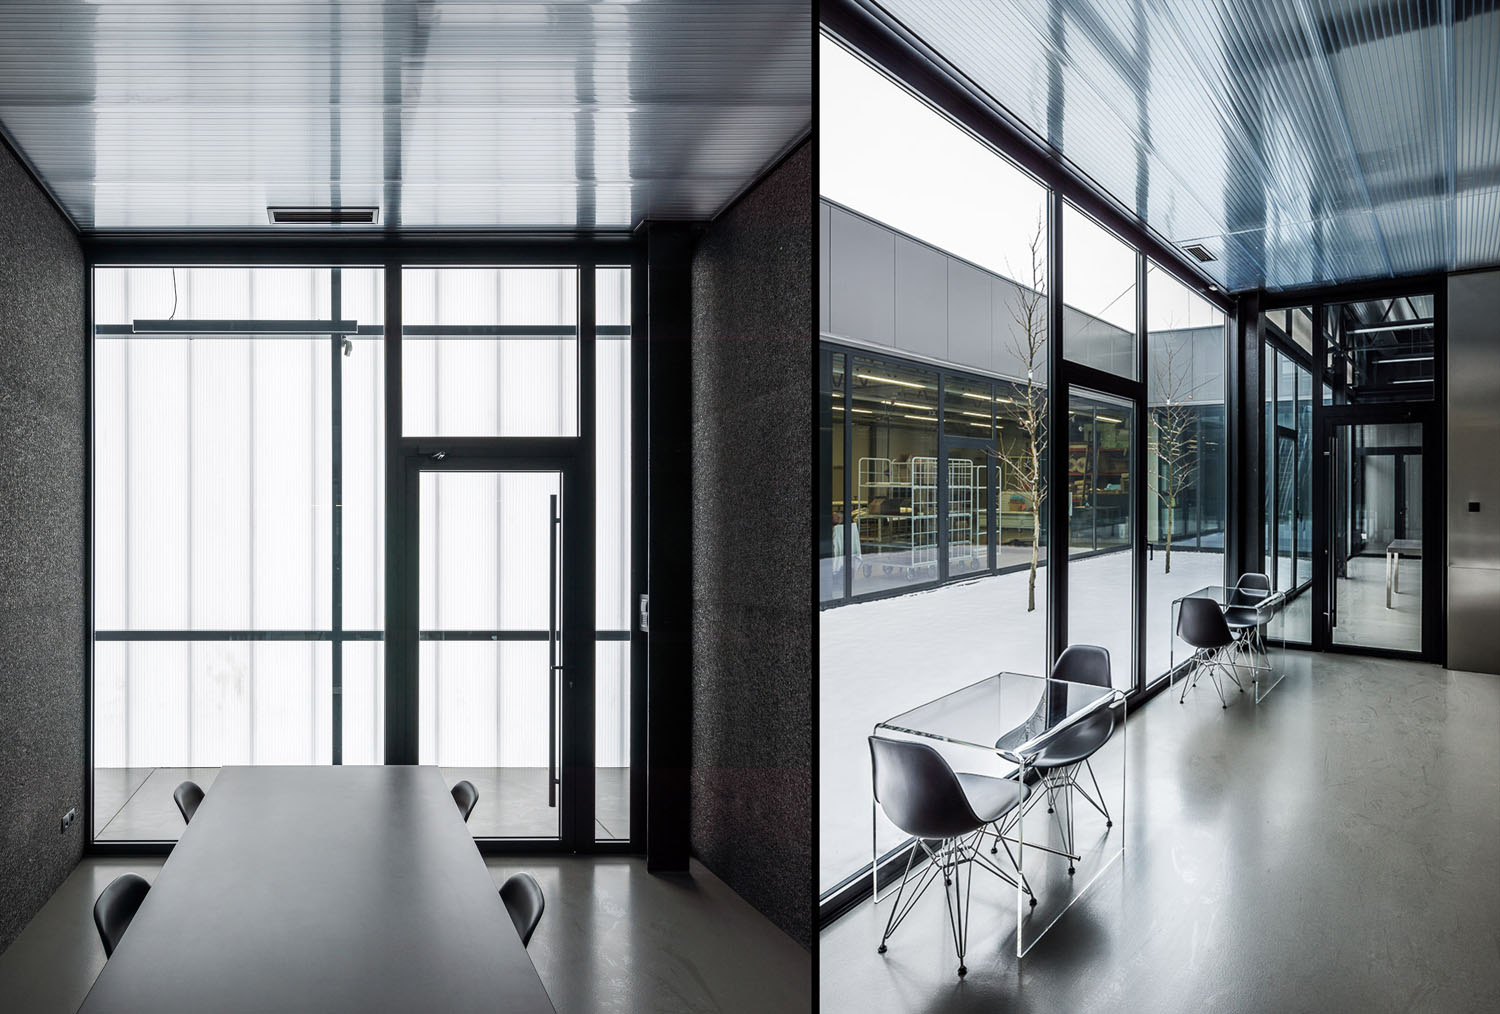 mm_Headquarters of an Advertising Agency design by YETI + JRK72_15